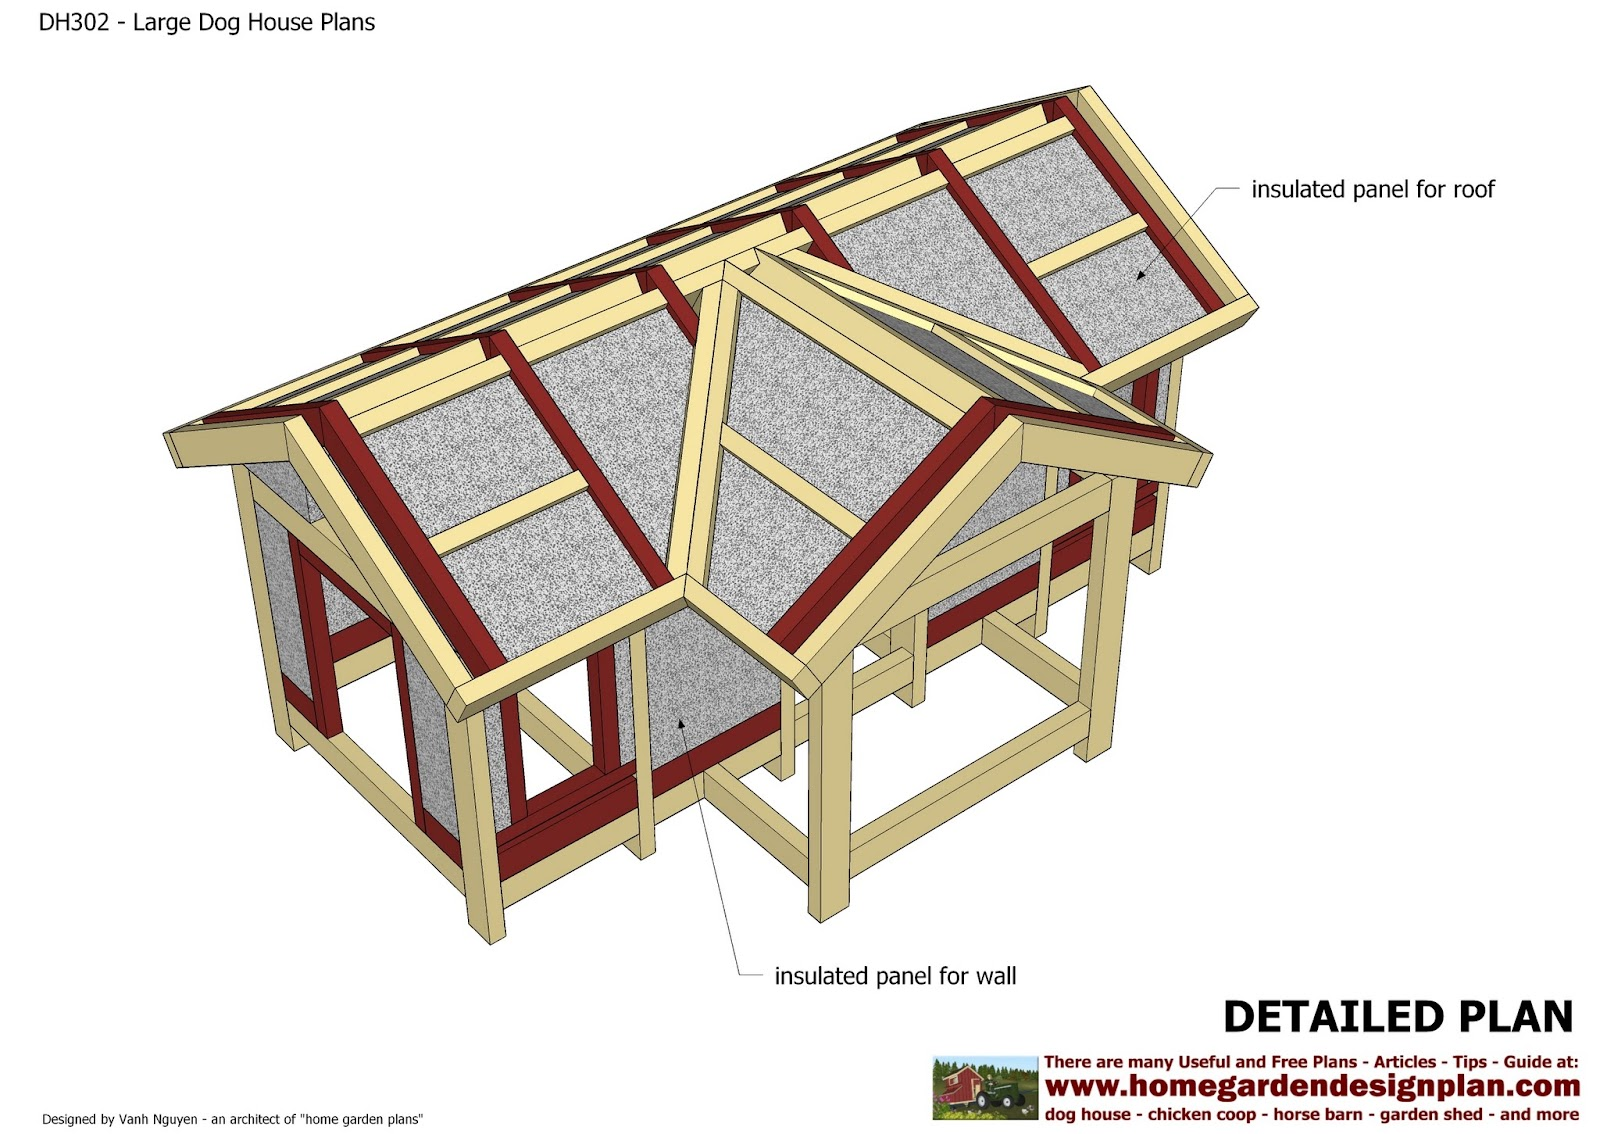 Home garden plans dh302 insulated dog house plans for Insulated dog house plans pdf